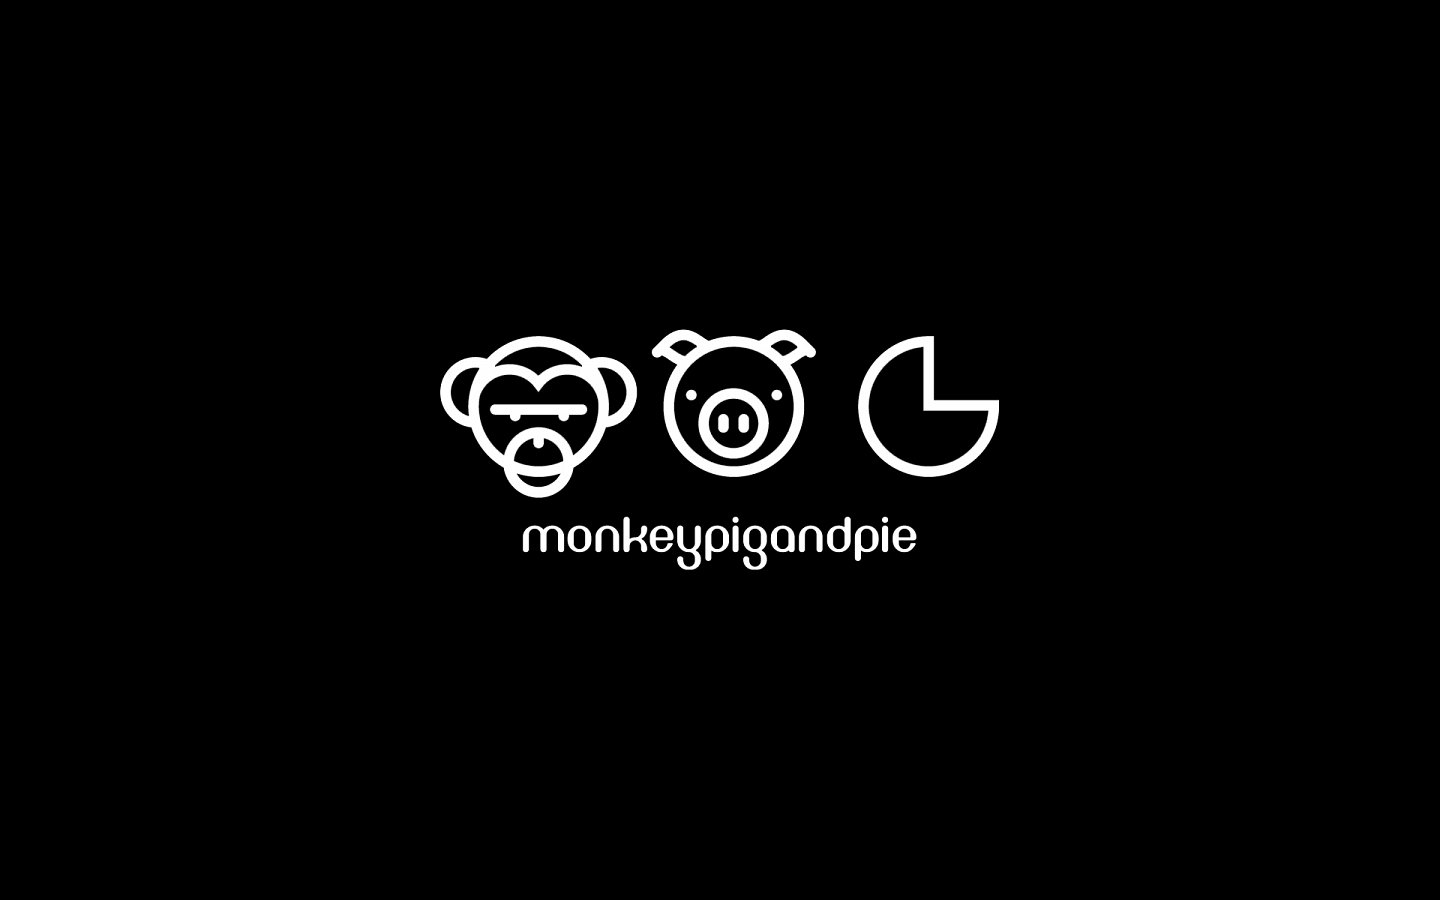 Monkey Pig and Pie, Logo Design Mono Reversed on Black